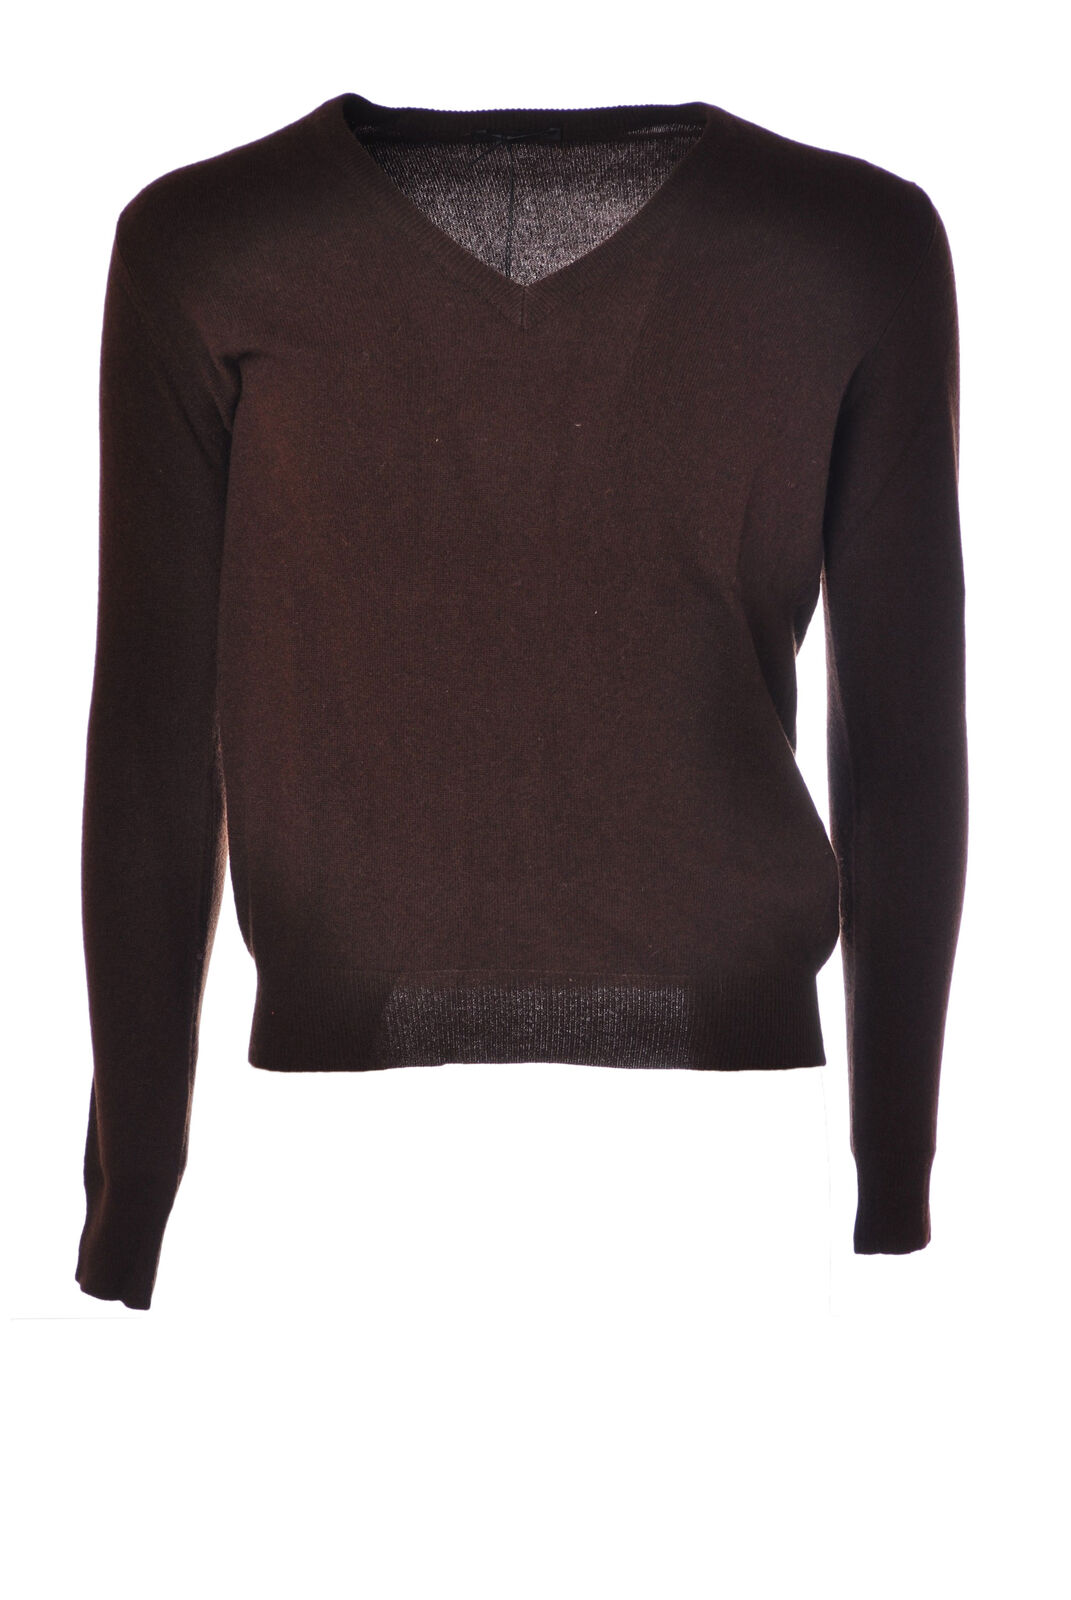 Roberto Collina  -  Sweaters - Male - Braun - 2844112A183601